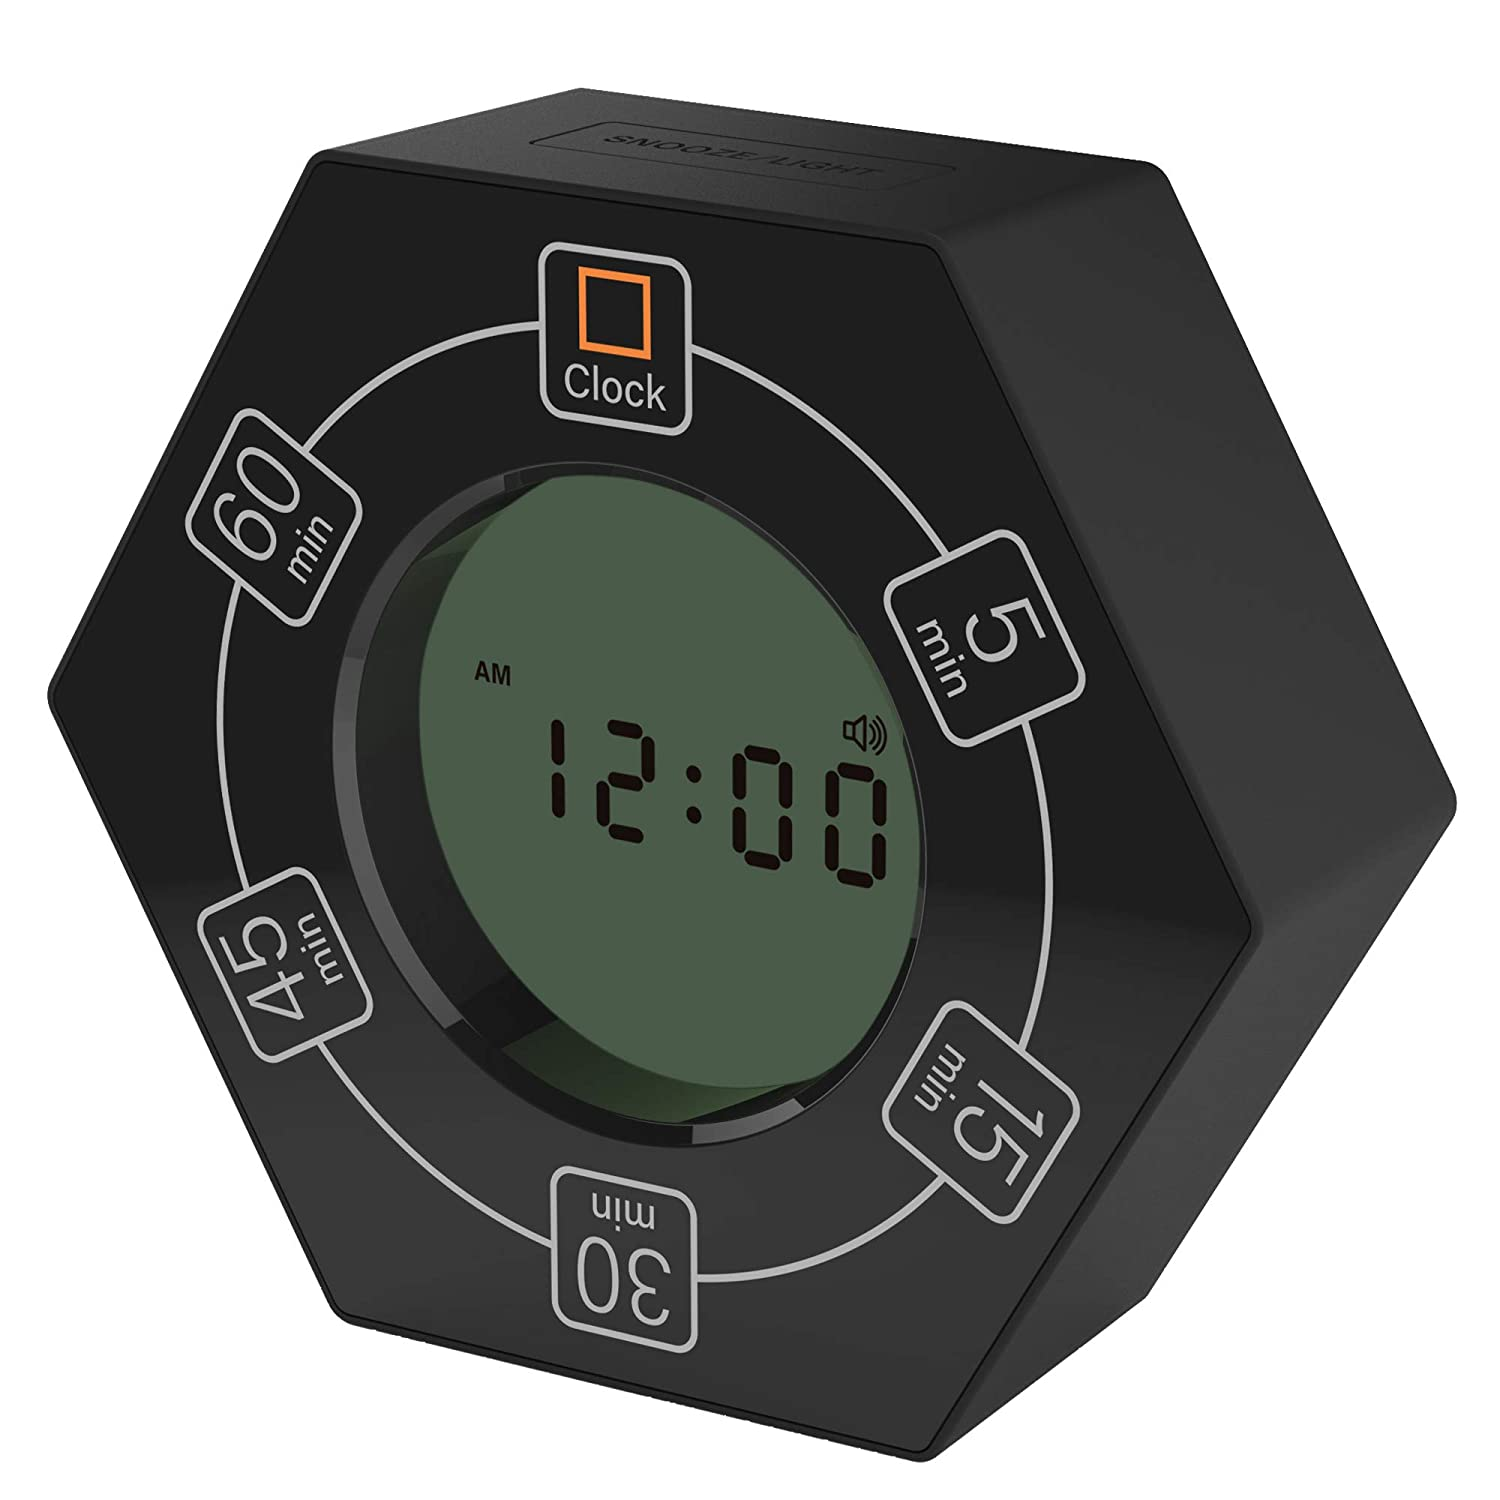 Hexagon Rotating Timer, 5,15, 30, 45, 60 Minute Preset Countdown Timer, Easy-to-Use Time Management Tool for Classroom, Meeting, Cooking, Study, Homework, Workouts (Black) 71Xie2oZECL